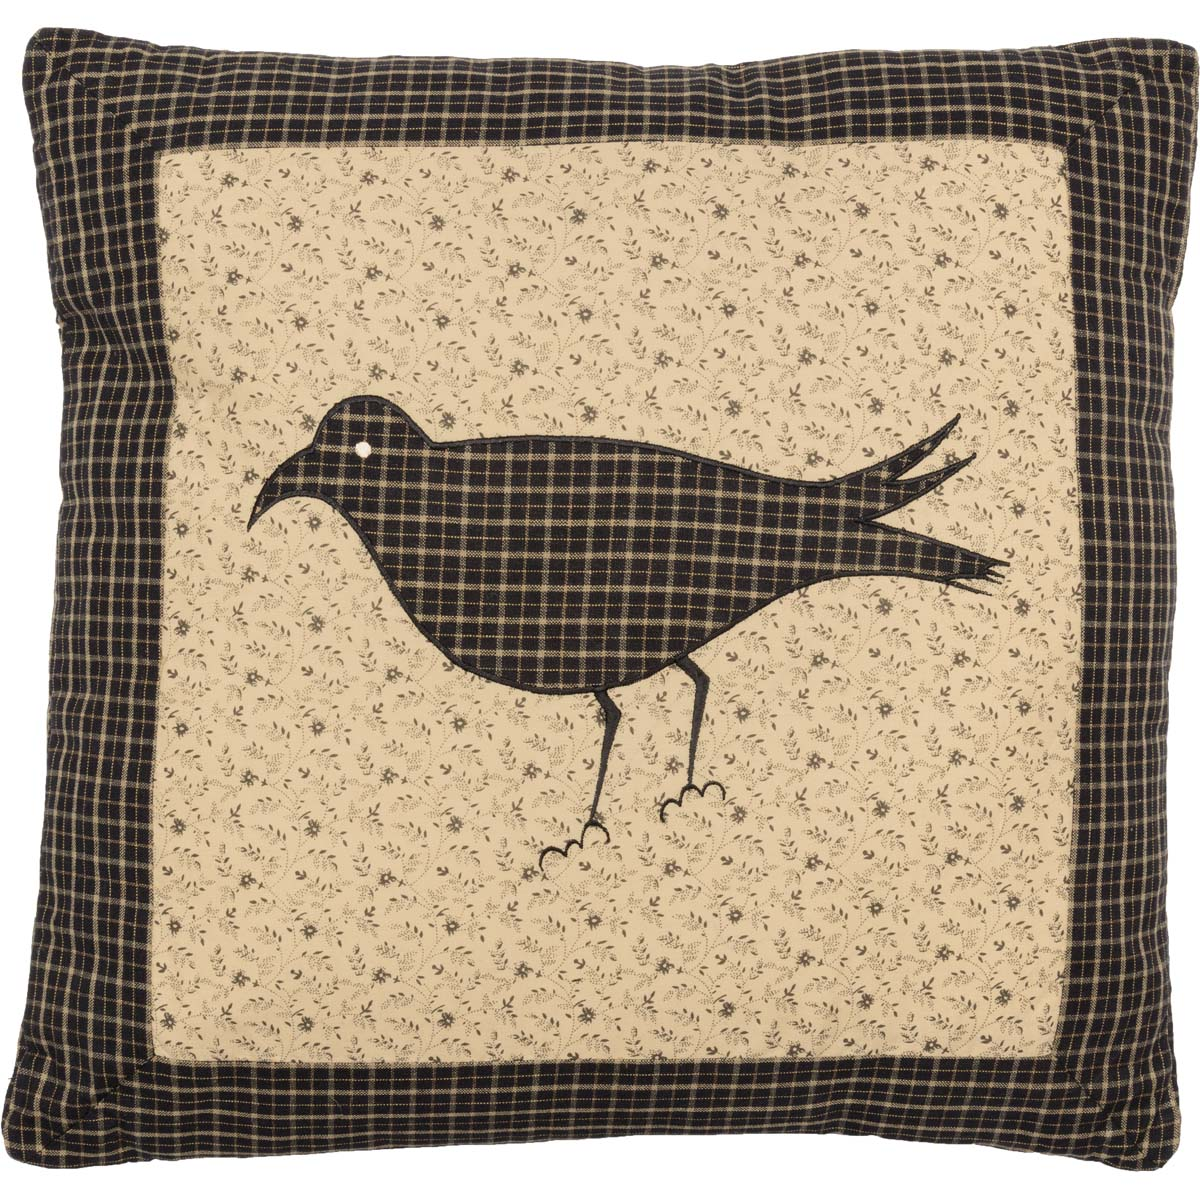 Kettle Grove Pillow Crow 16x16 - Woodrol